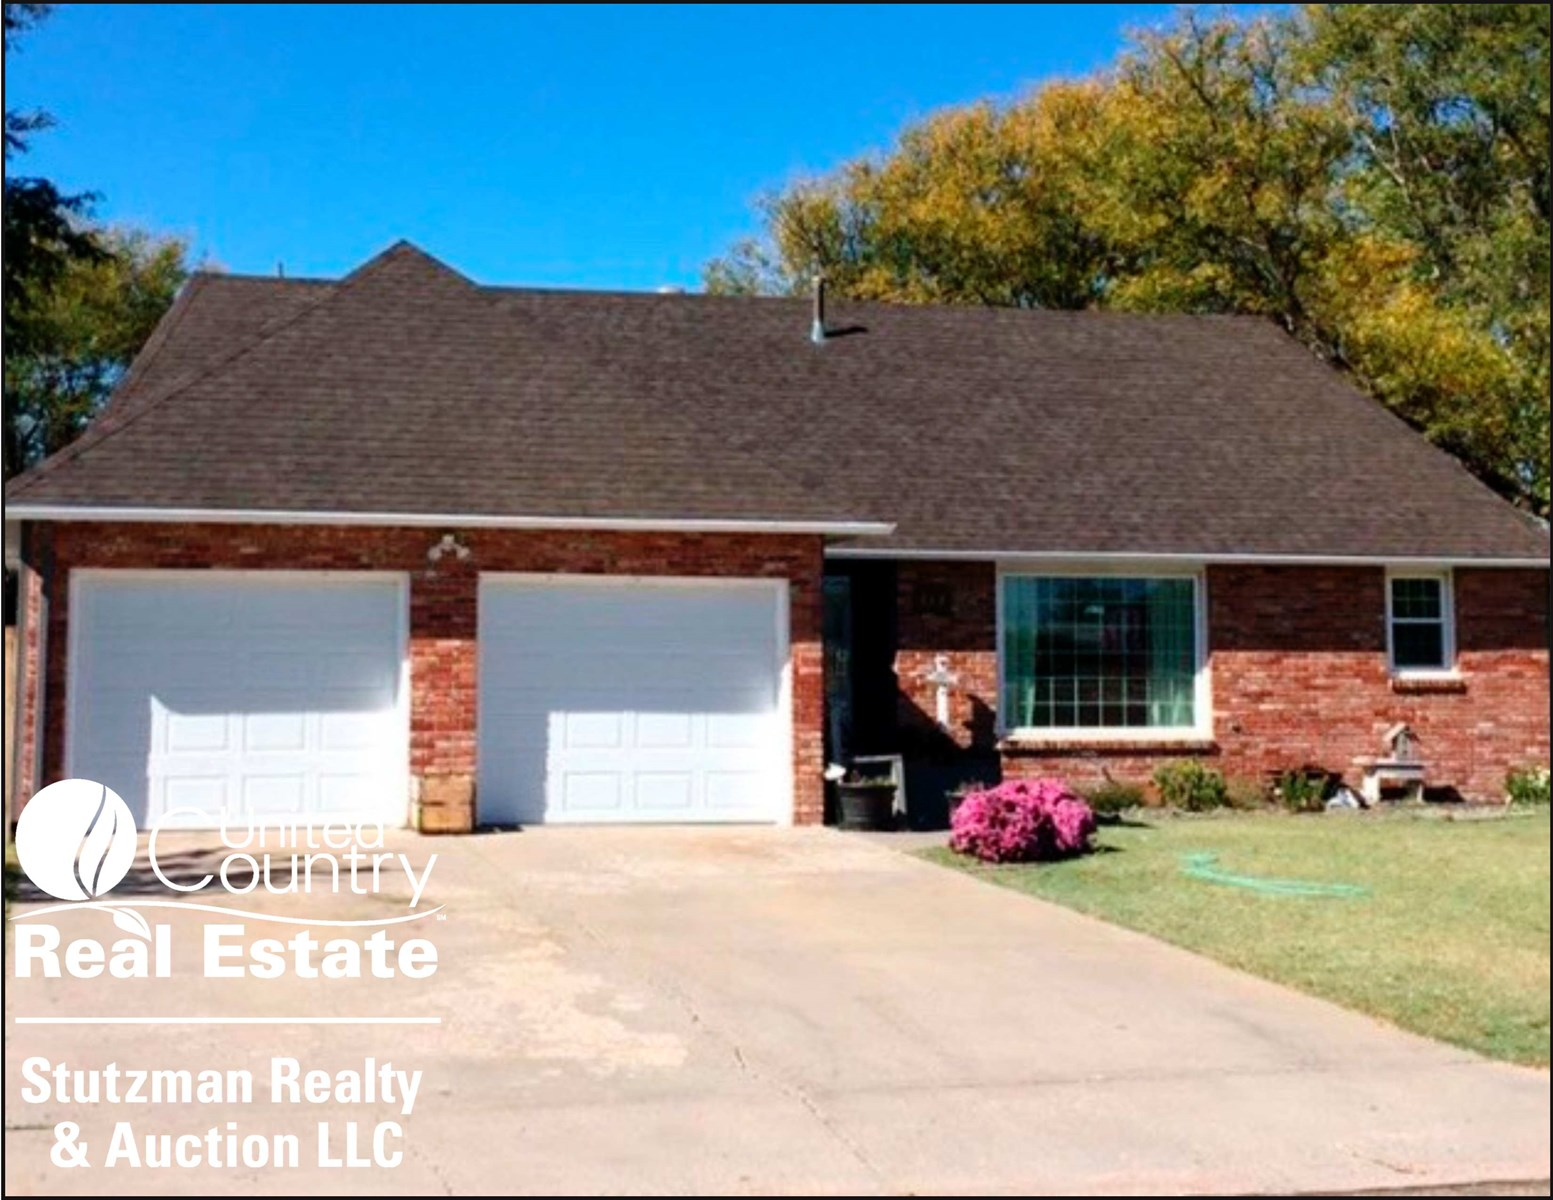 FIVE BEDROOM BRICK HOME FOR SALE IN ULYSSES, KS